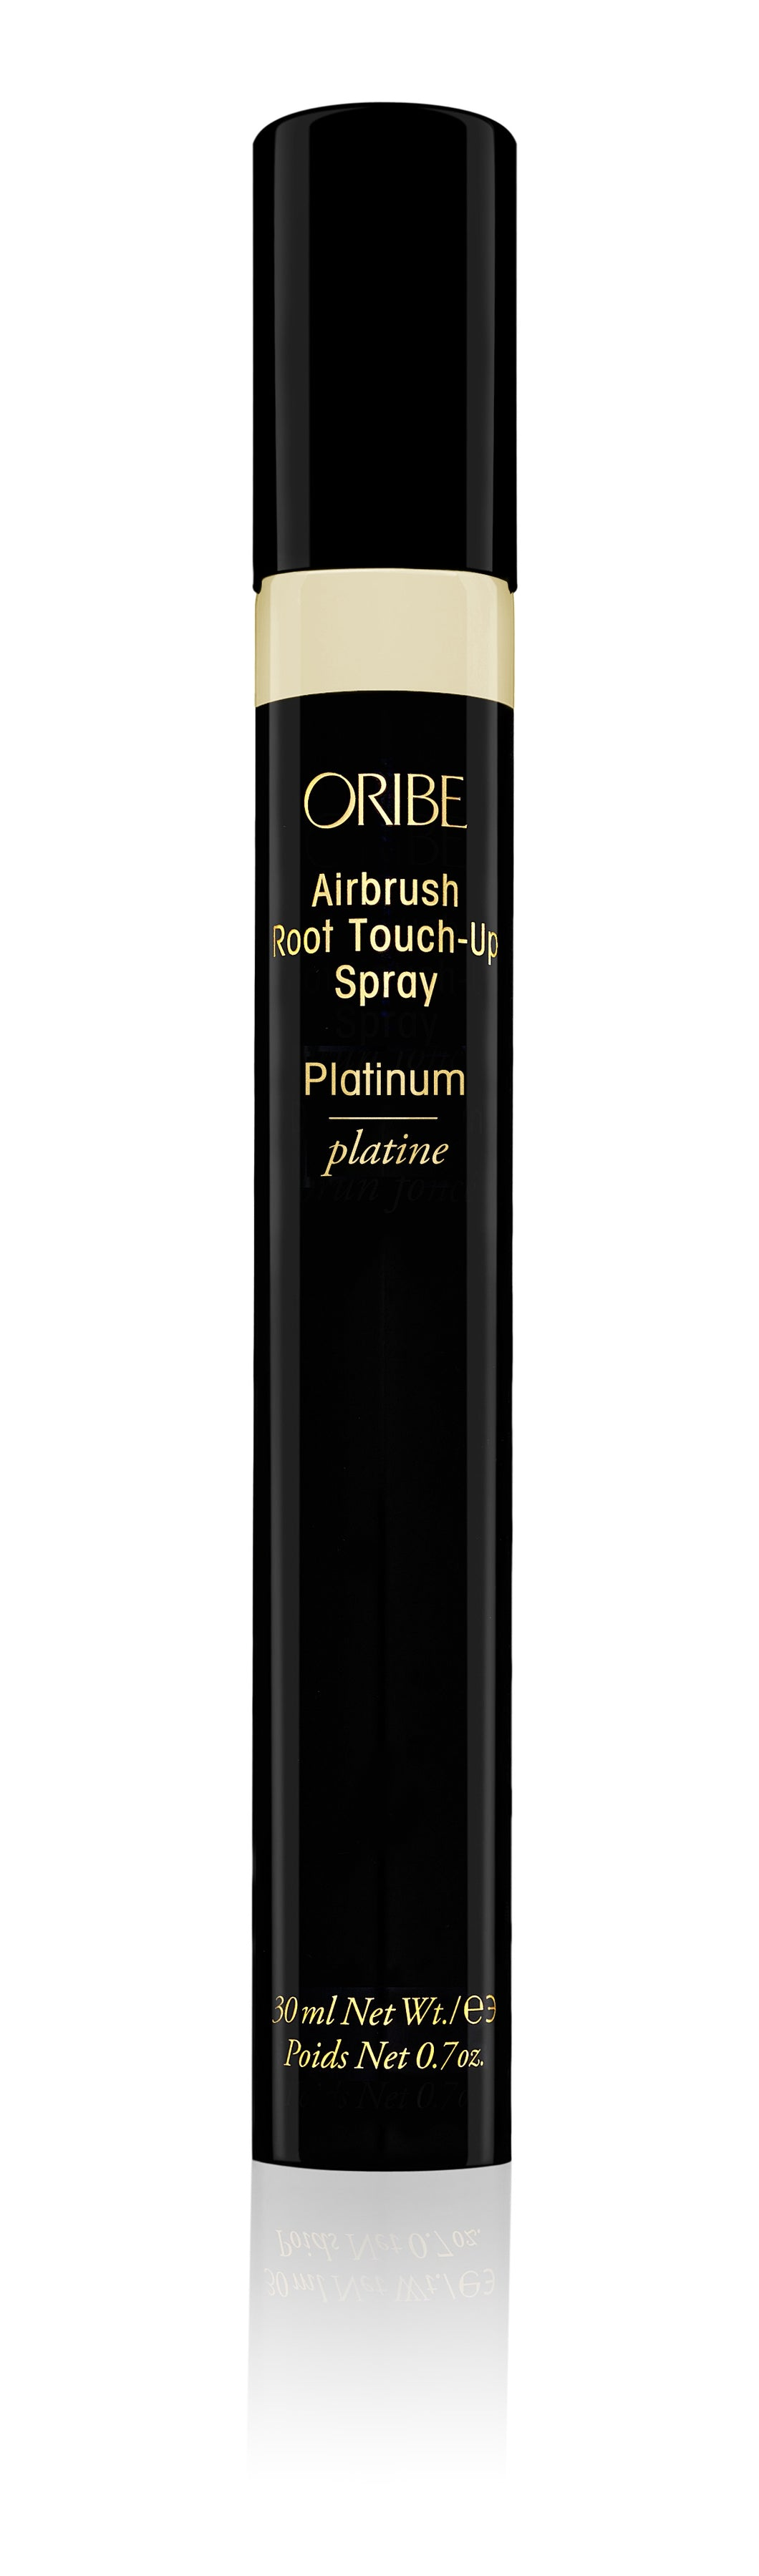 Airbrush Root Touch-Up Spray- Platinum Blonde